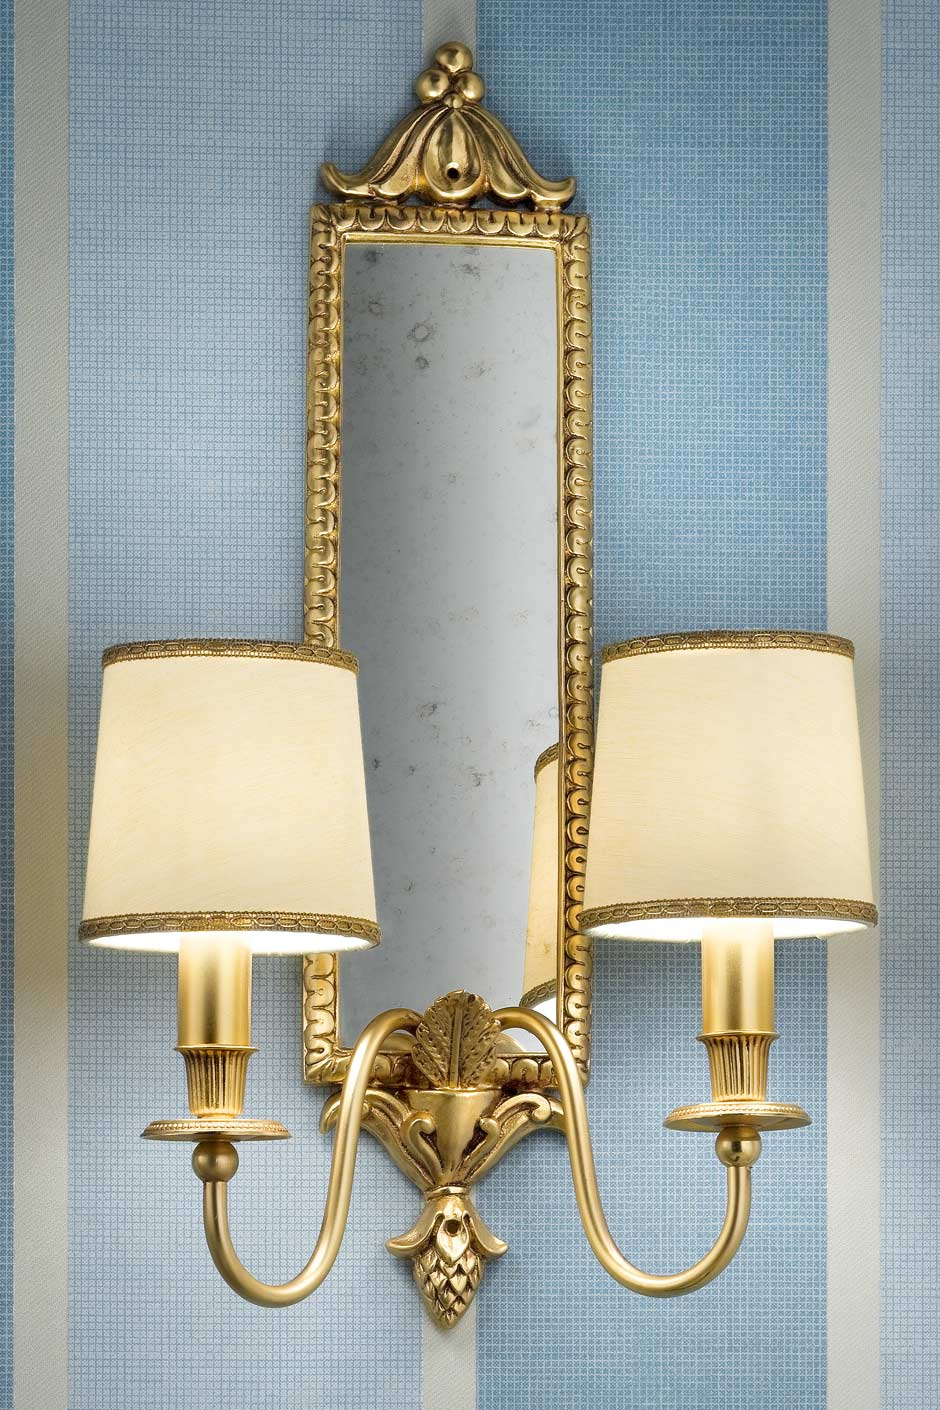 Leaf Motif Double Gold Plated Bronze Wall Light With Mirror And Beige Silk Shades Masiero Murano And Crystal Chandeliers Lamps And Wall Lights Ref 11110656